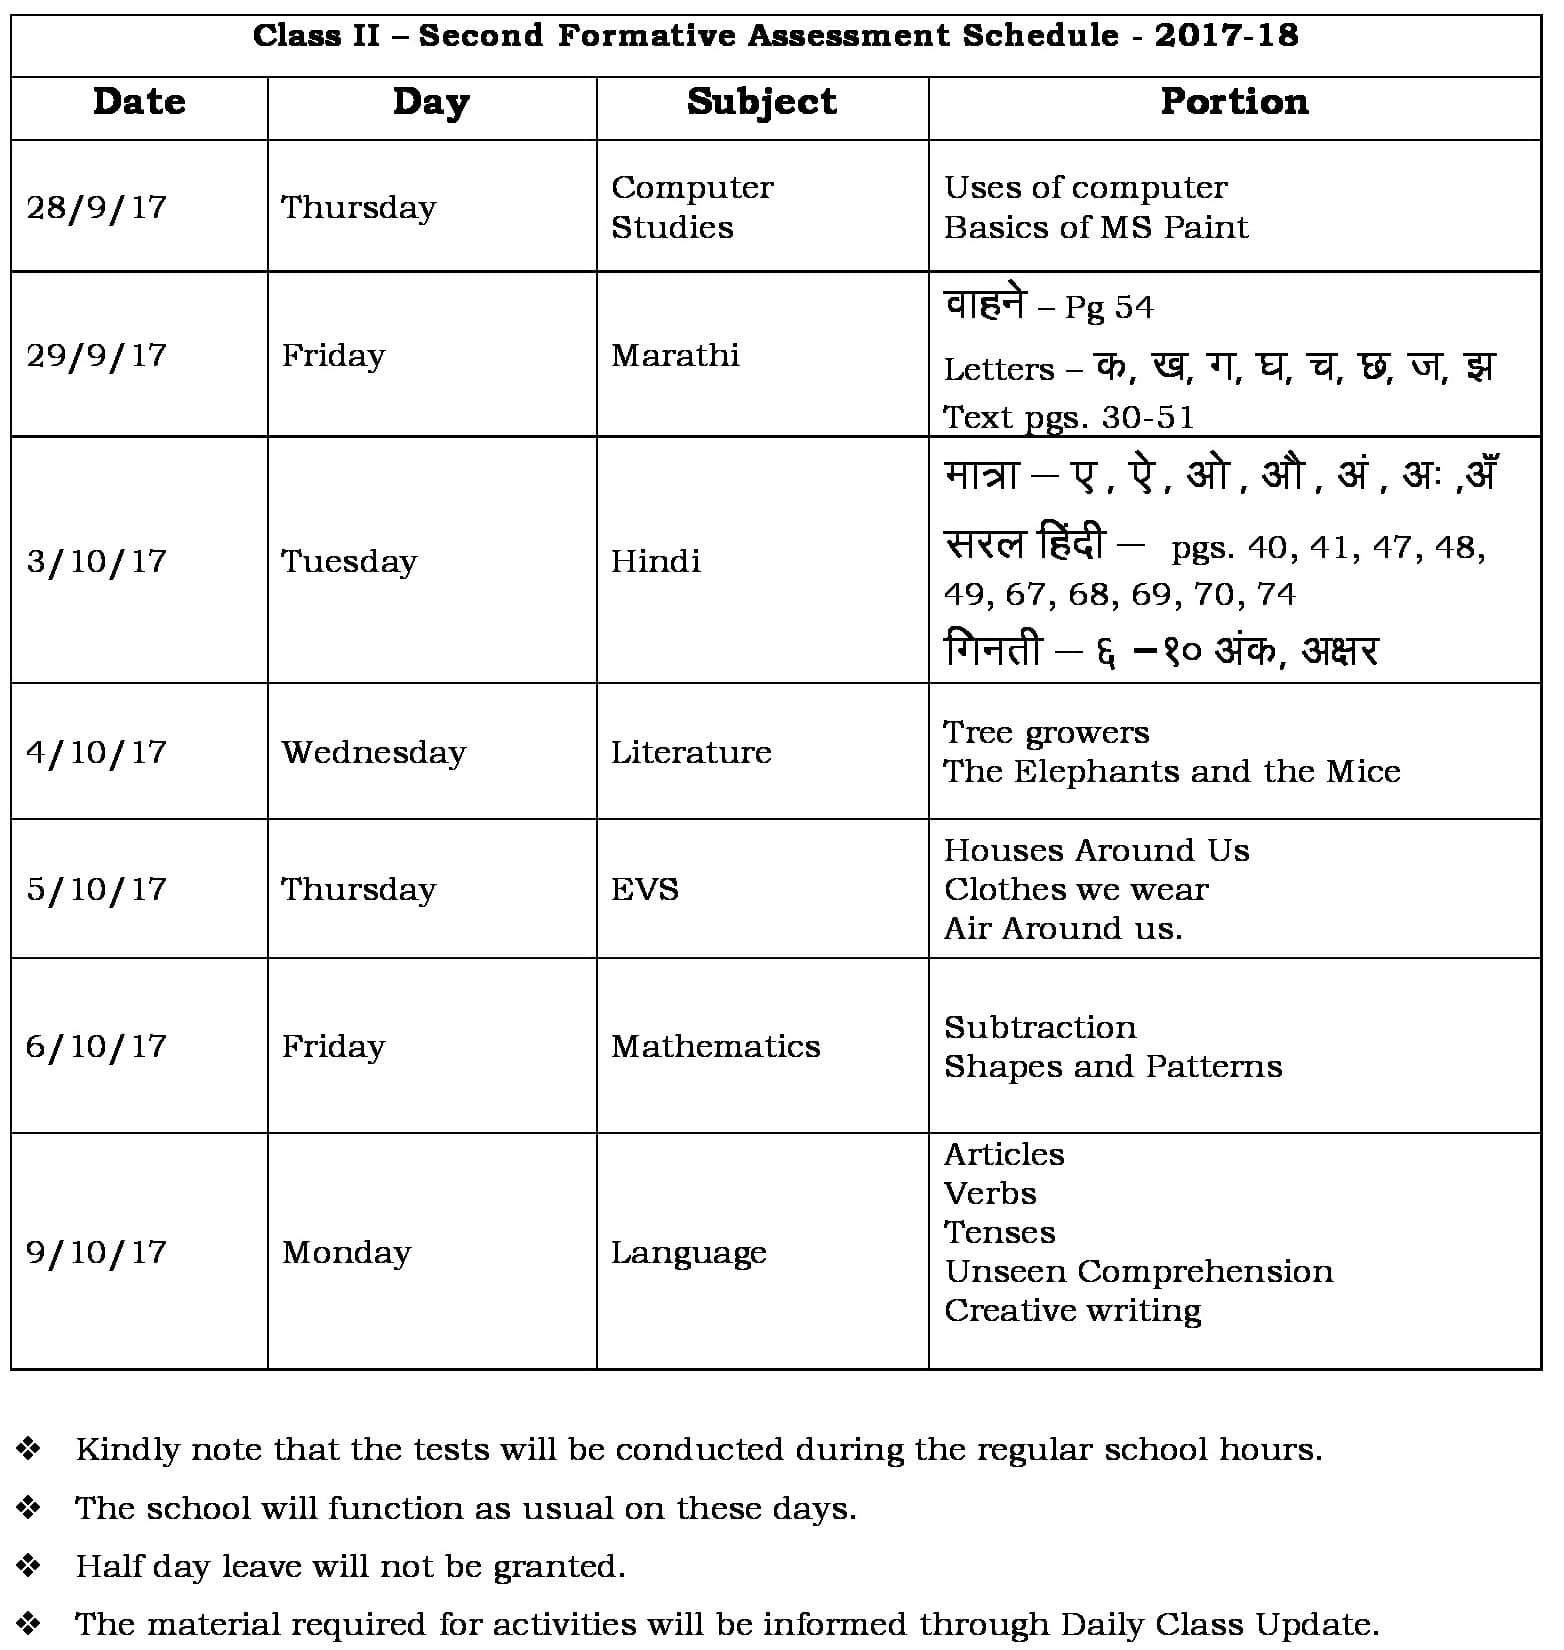 Schedule for FA-II Assesssments